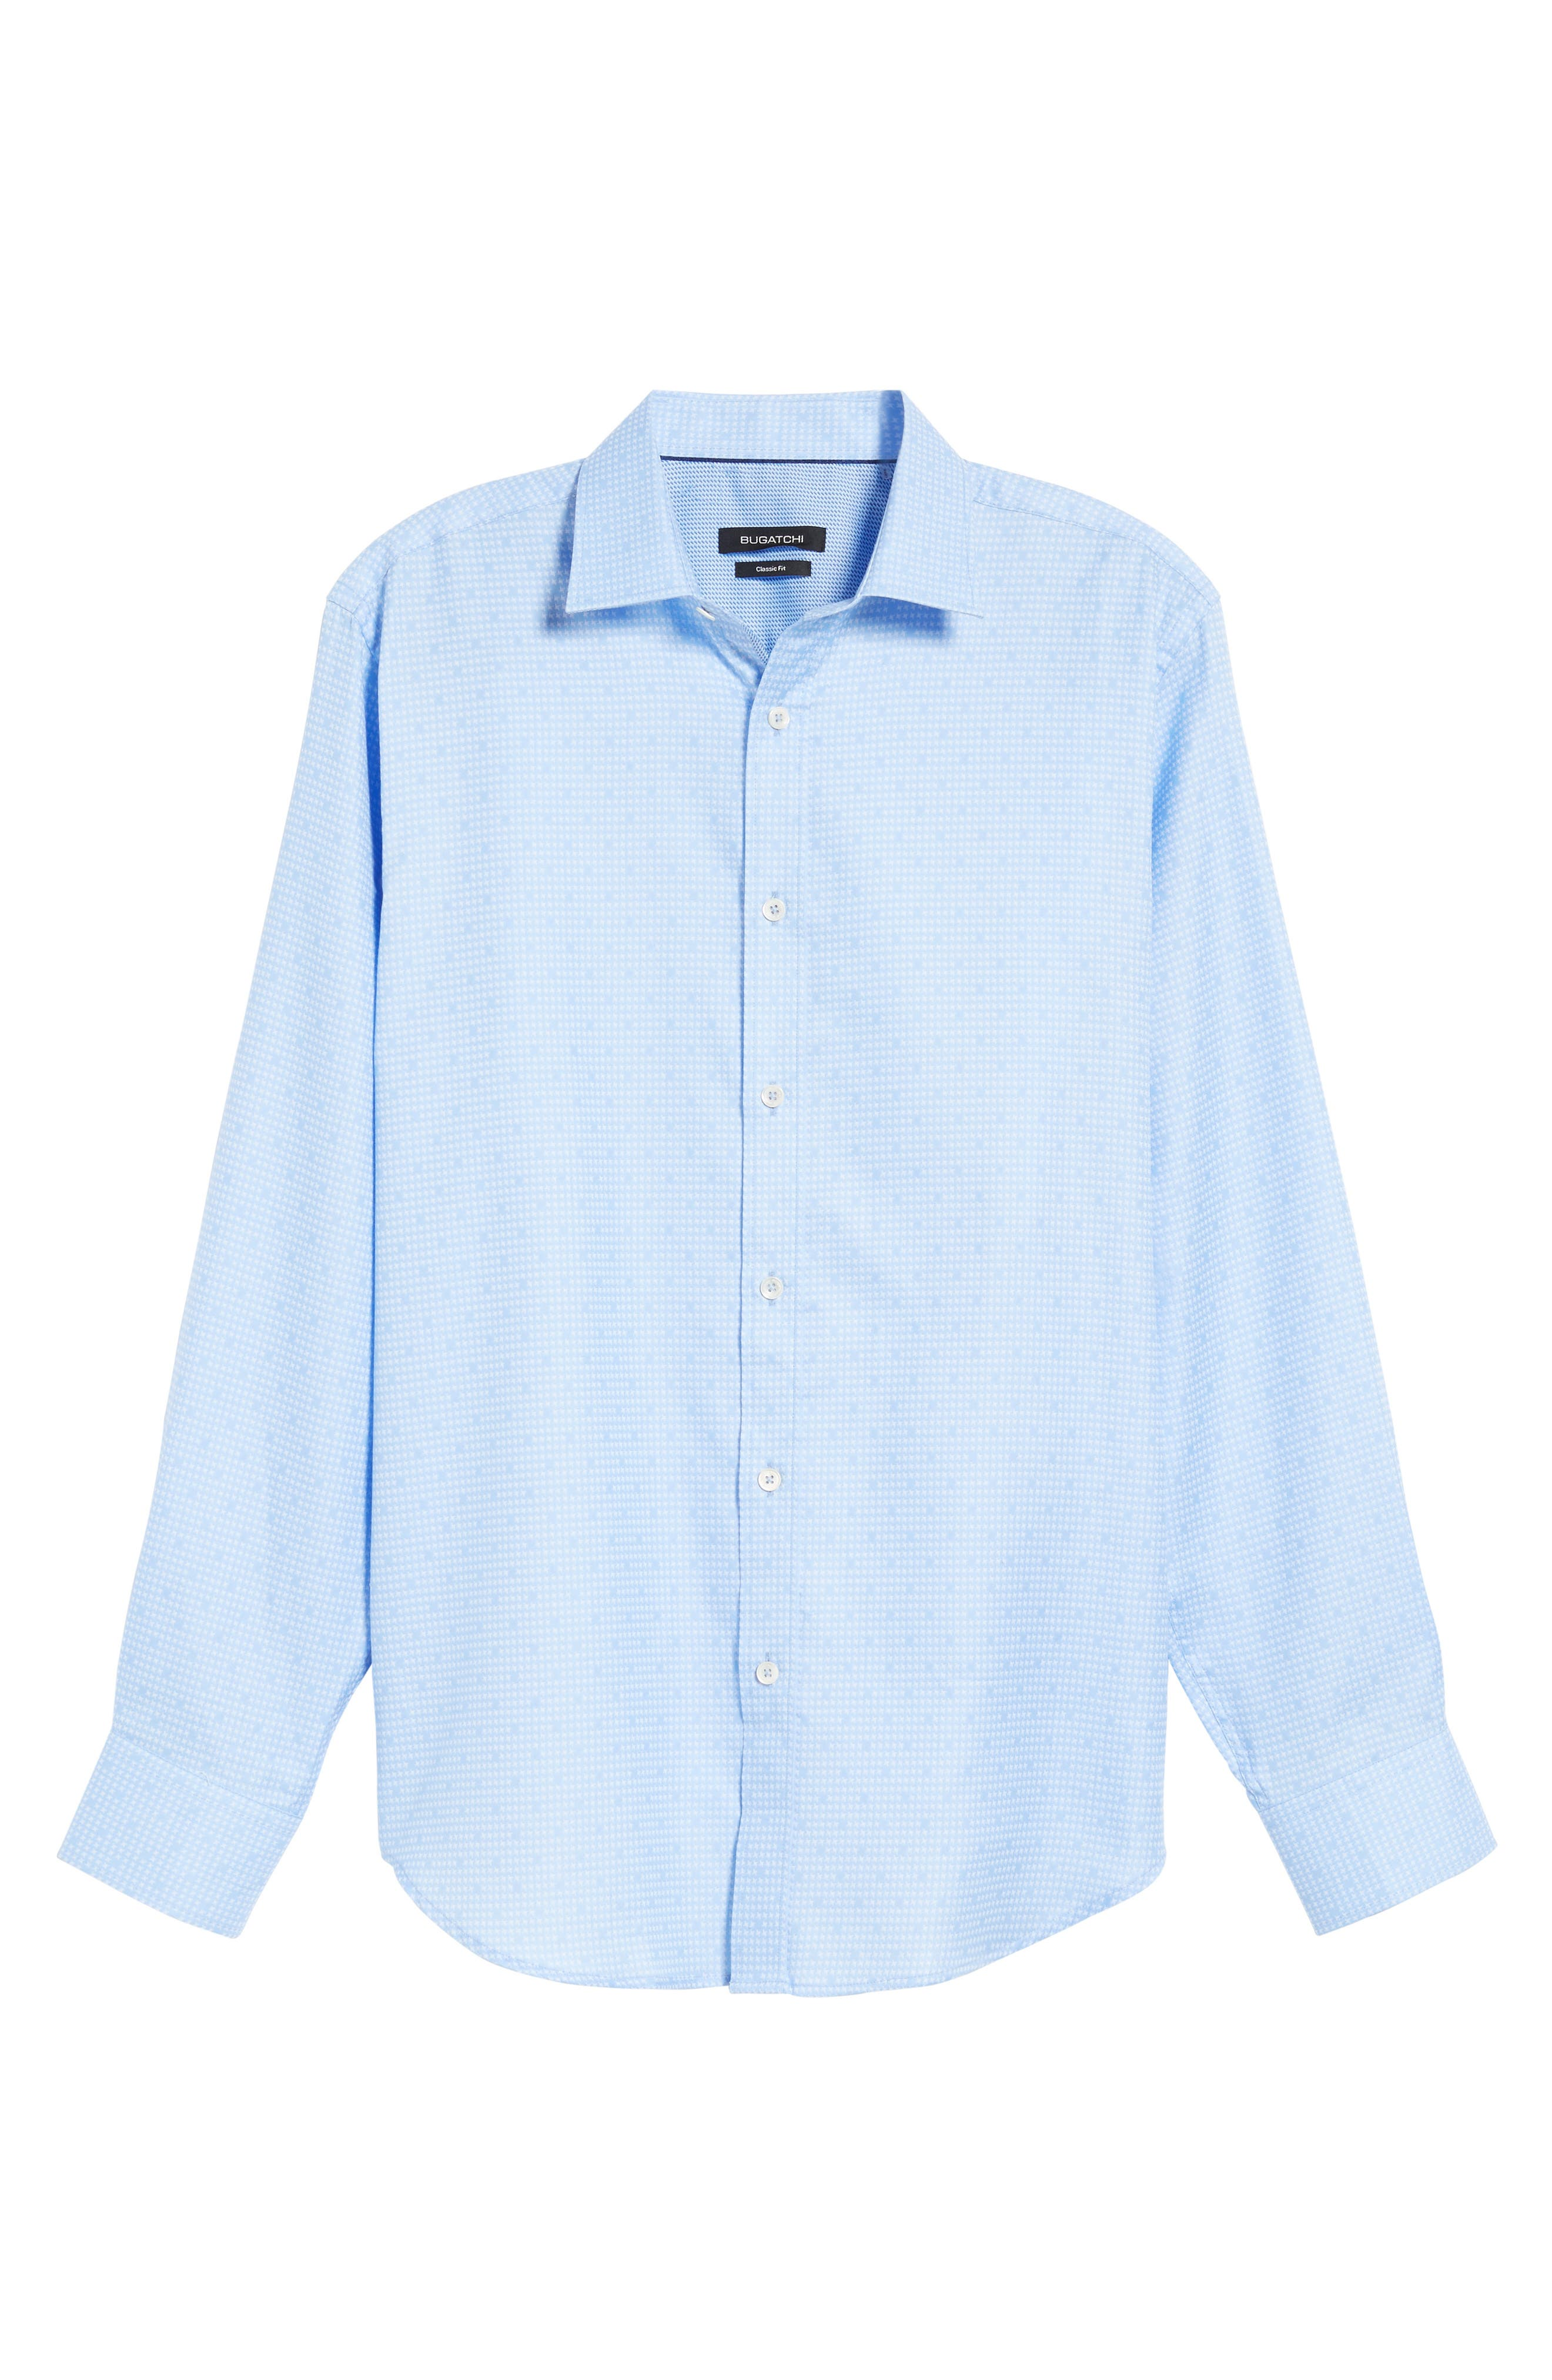 Classic Fit Houndstooth Sport Shirt,                             Alternate thumbnail 6, color,                             459